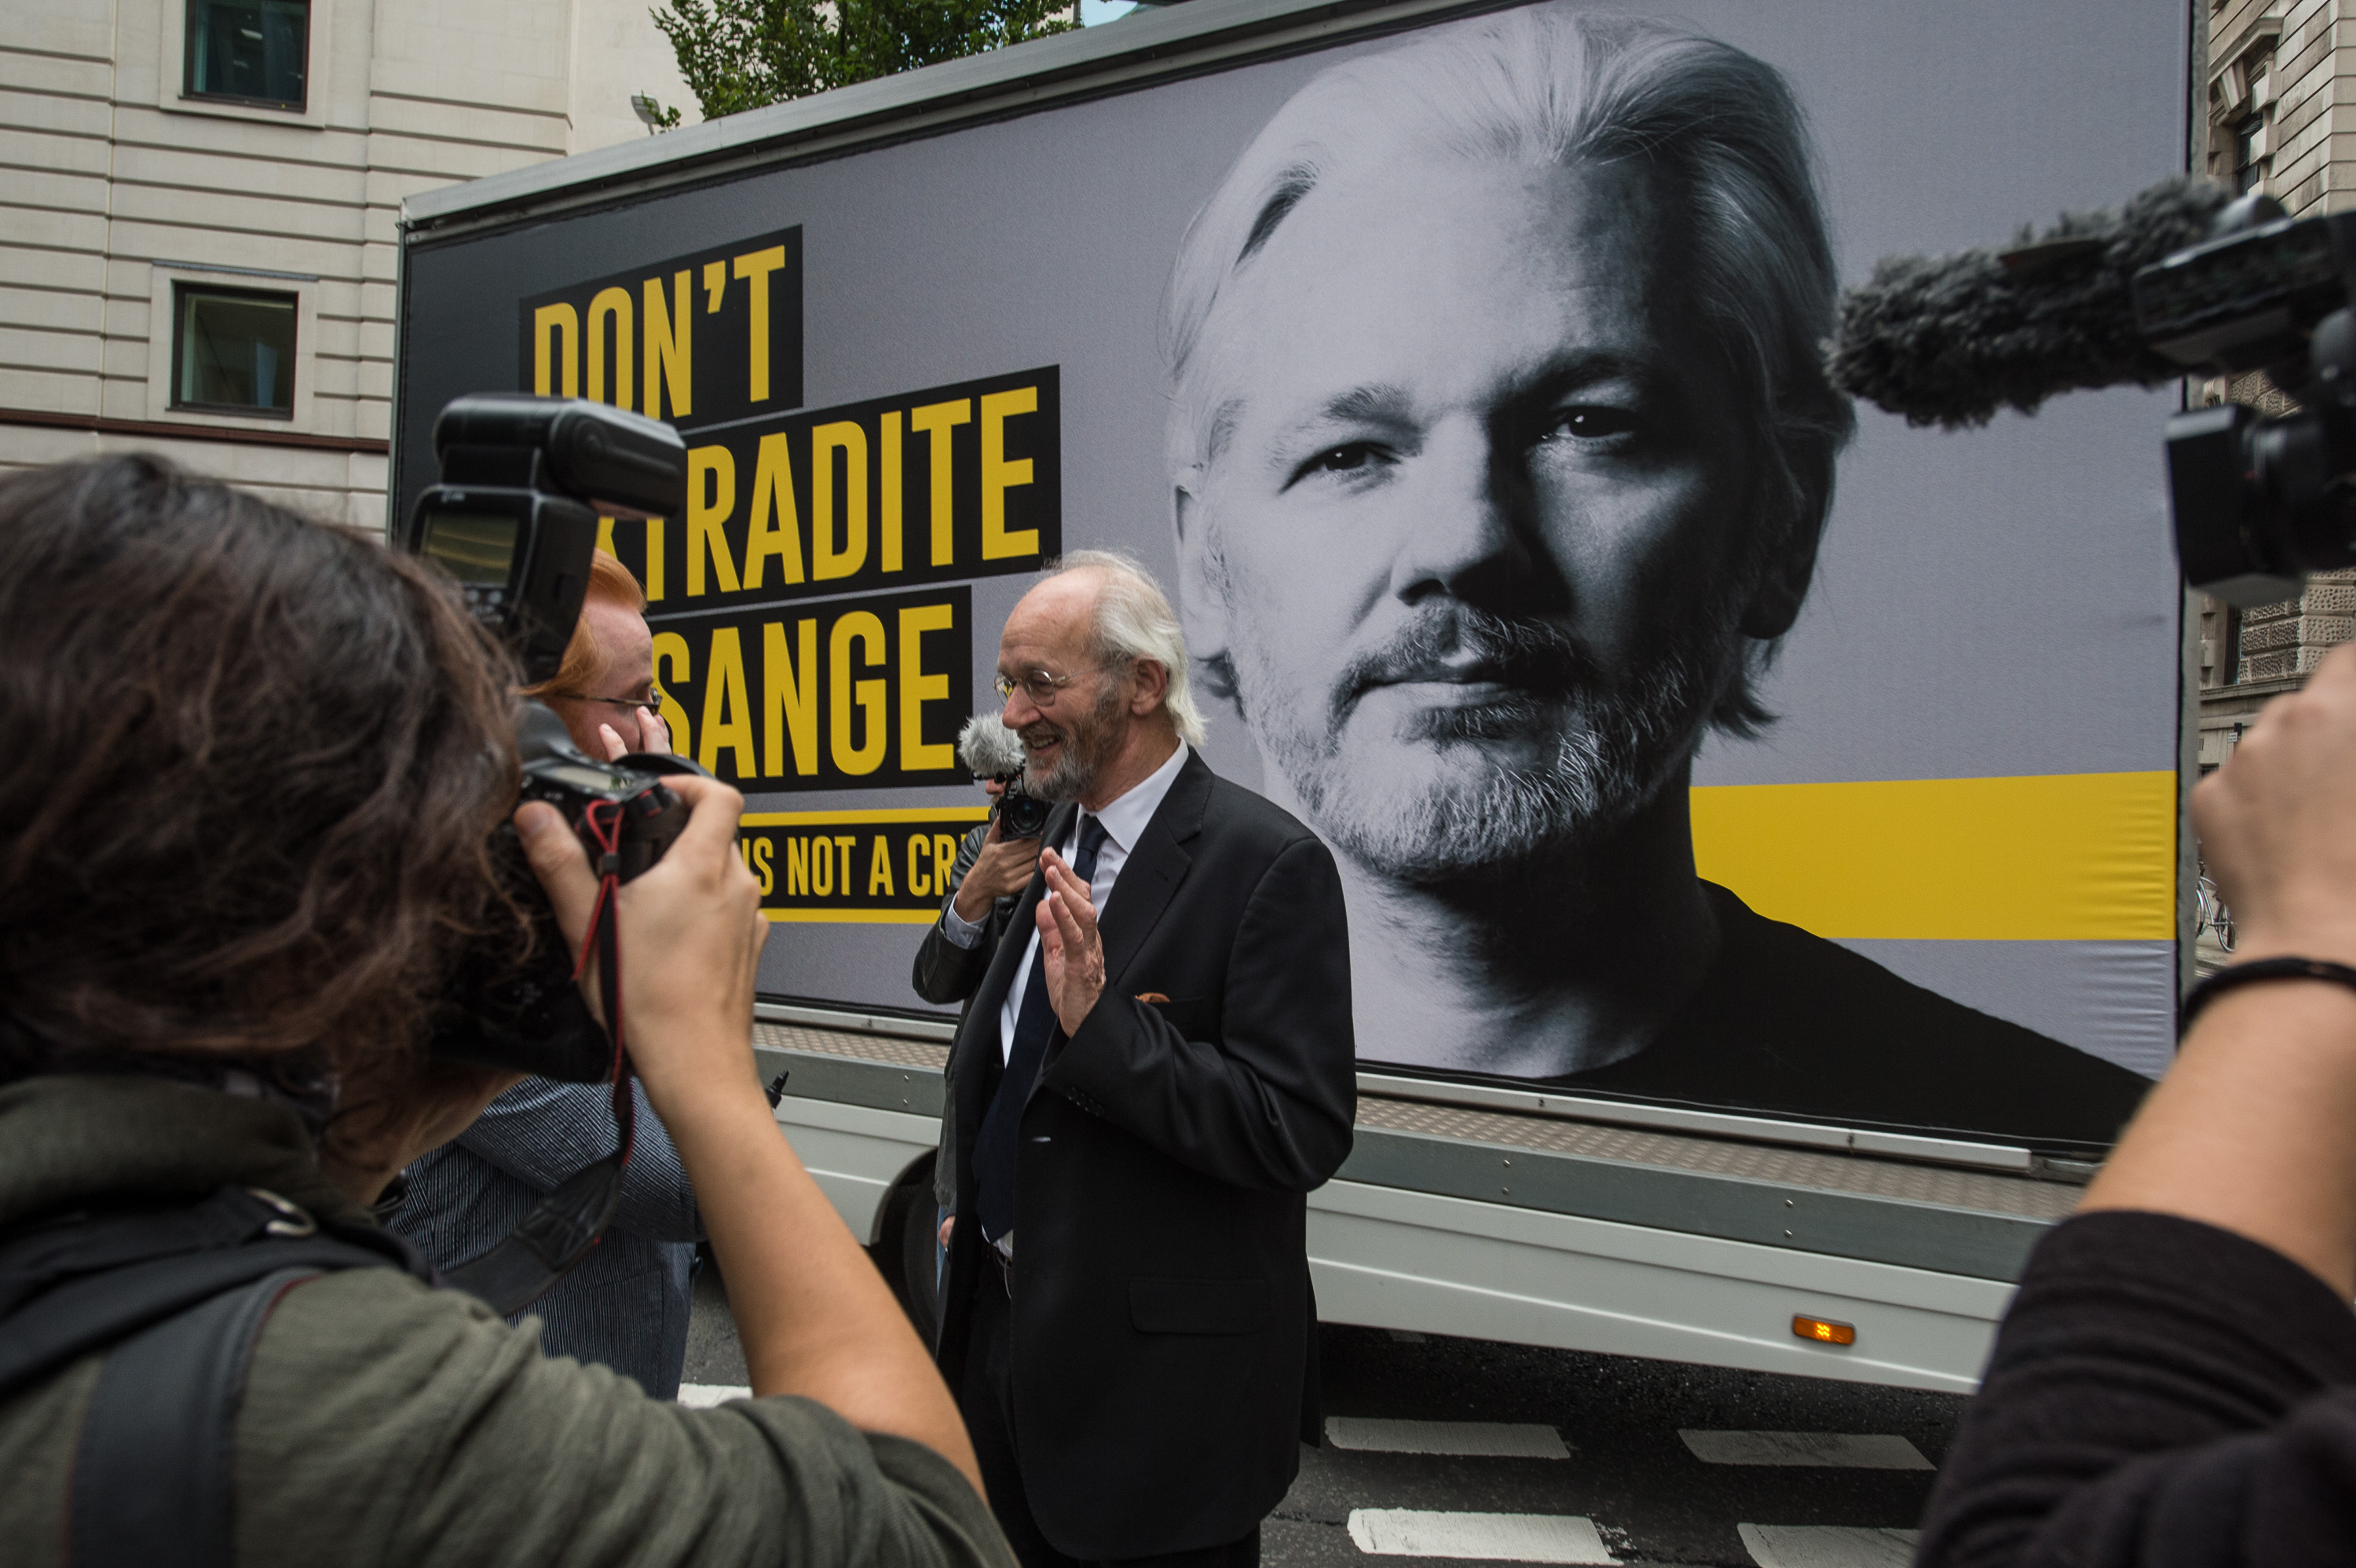 Assange Court Report September 16: Afternoon